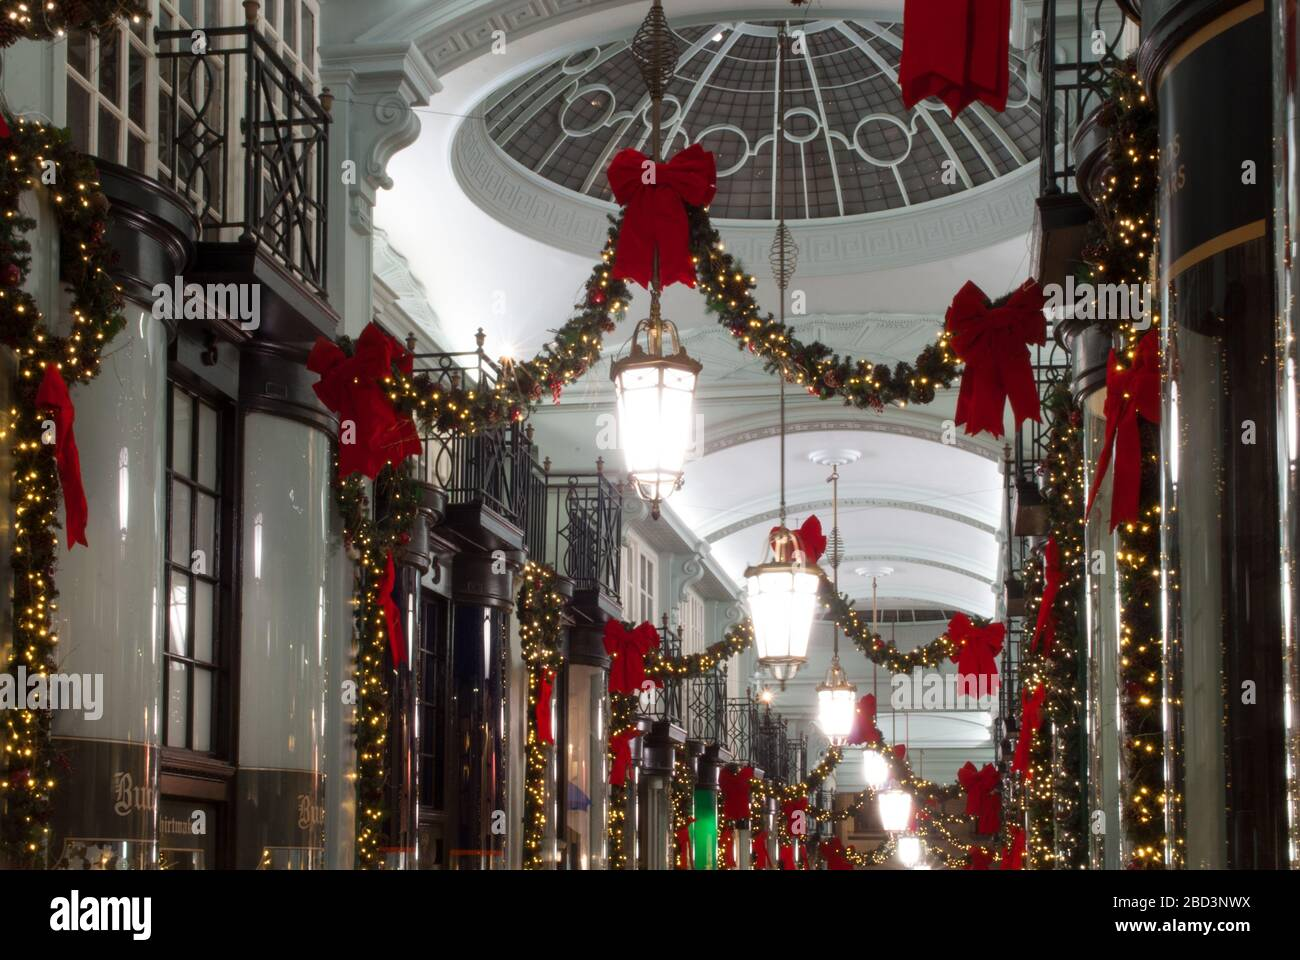 Christmas Decorations Retail Shopping Shops Arcade Piccadilly Arcade, St. James's, London SW1Y 6NH Stock Photo